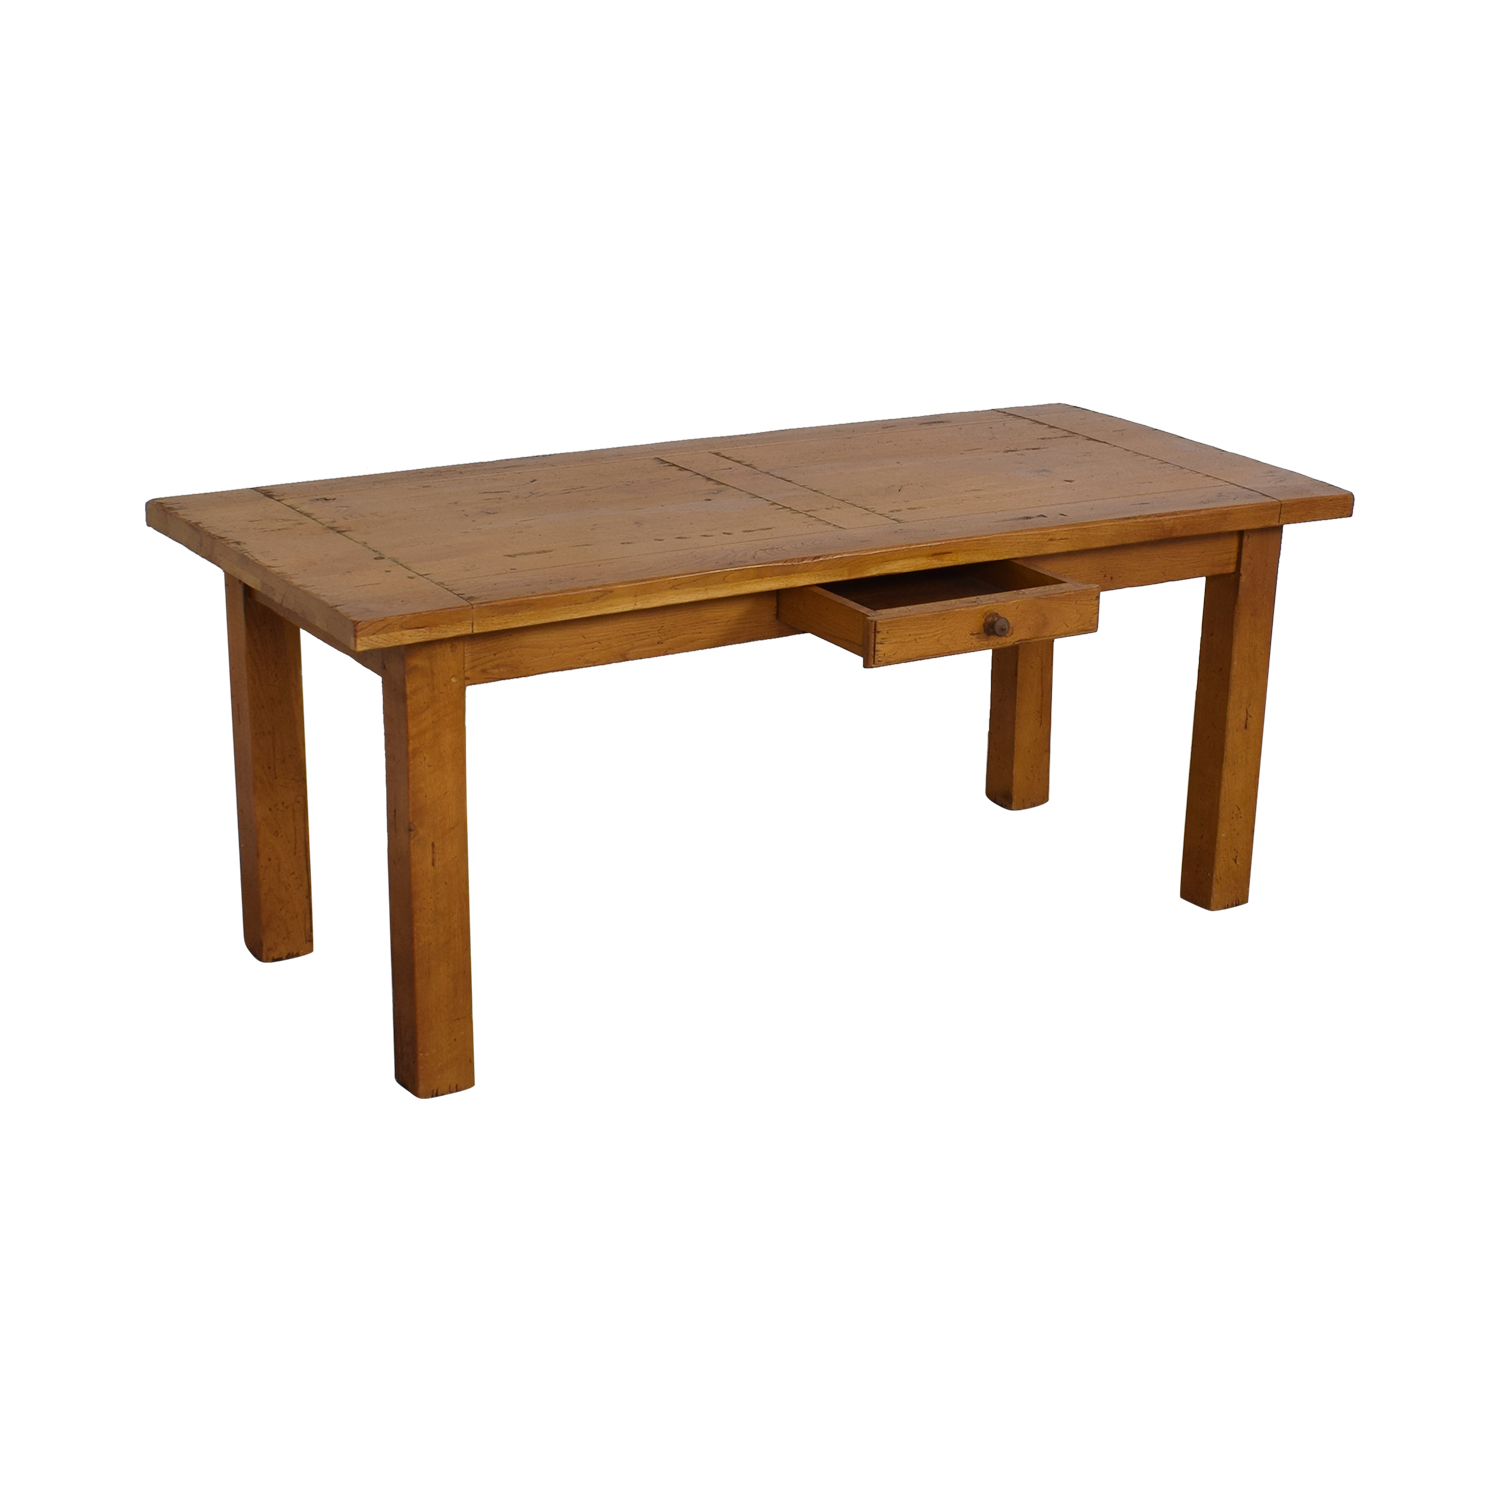 Crate & Barrel Crate & Barrel French Farm Dining Table on sale